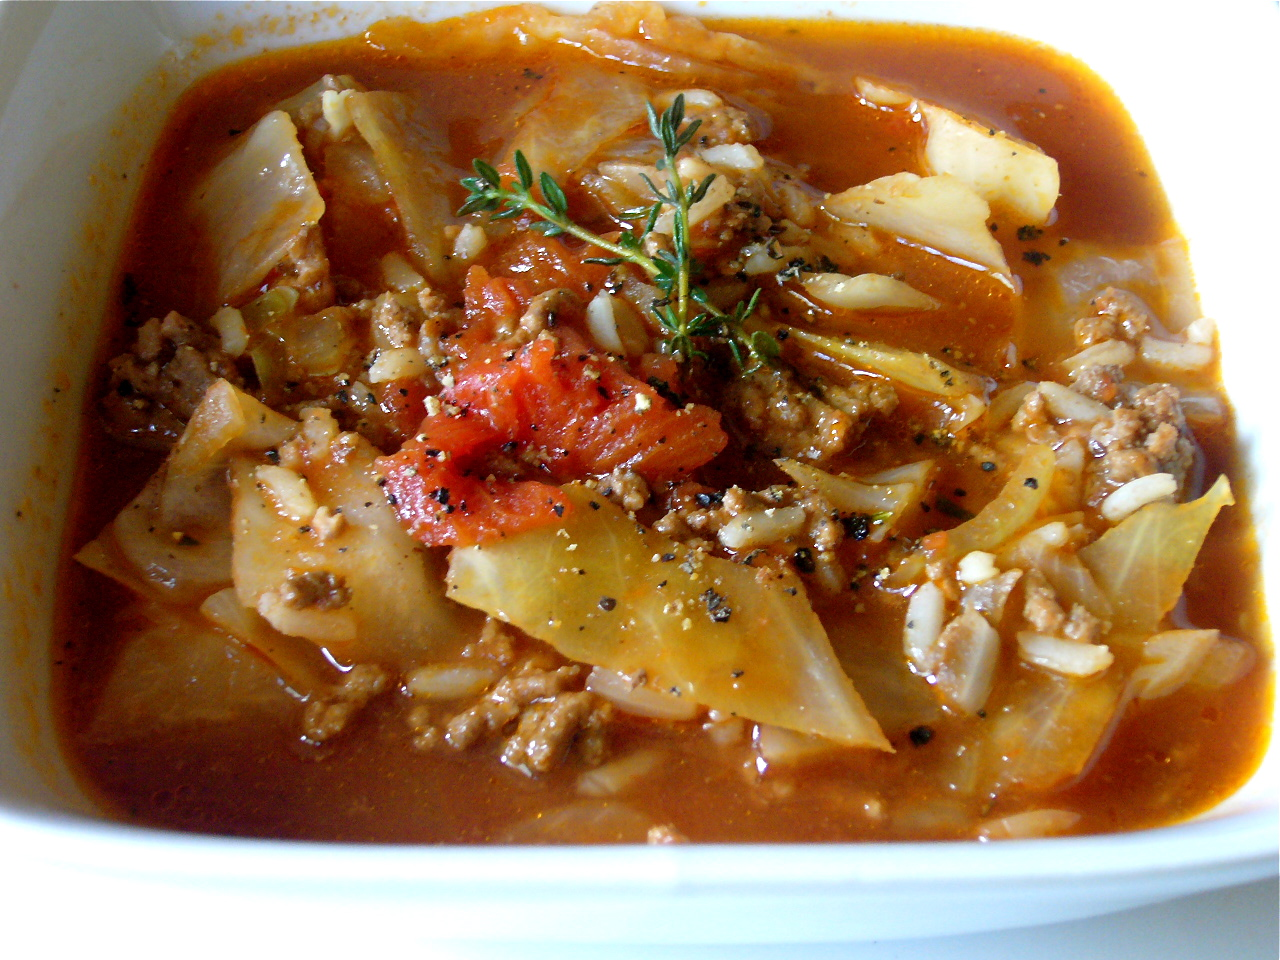 Cabbage Roll Soup - it's not too pretty to look at but it's delicious, filling and budget-friendly.